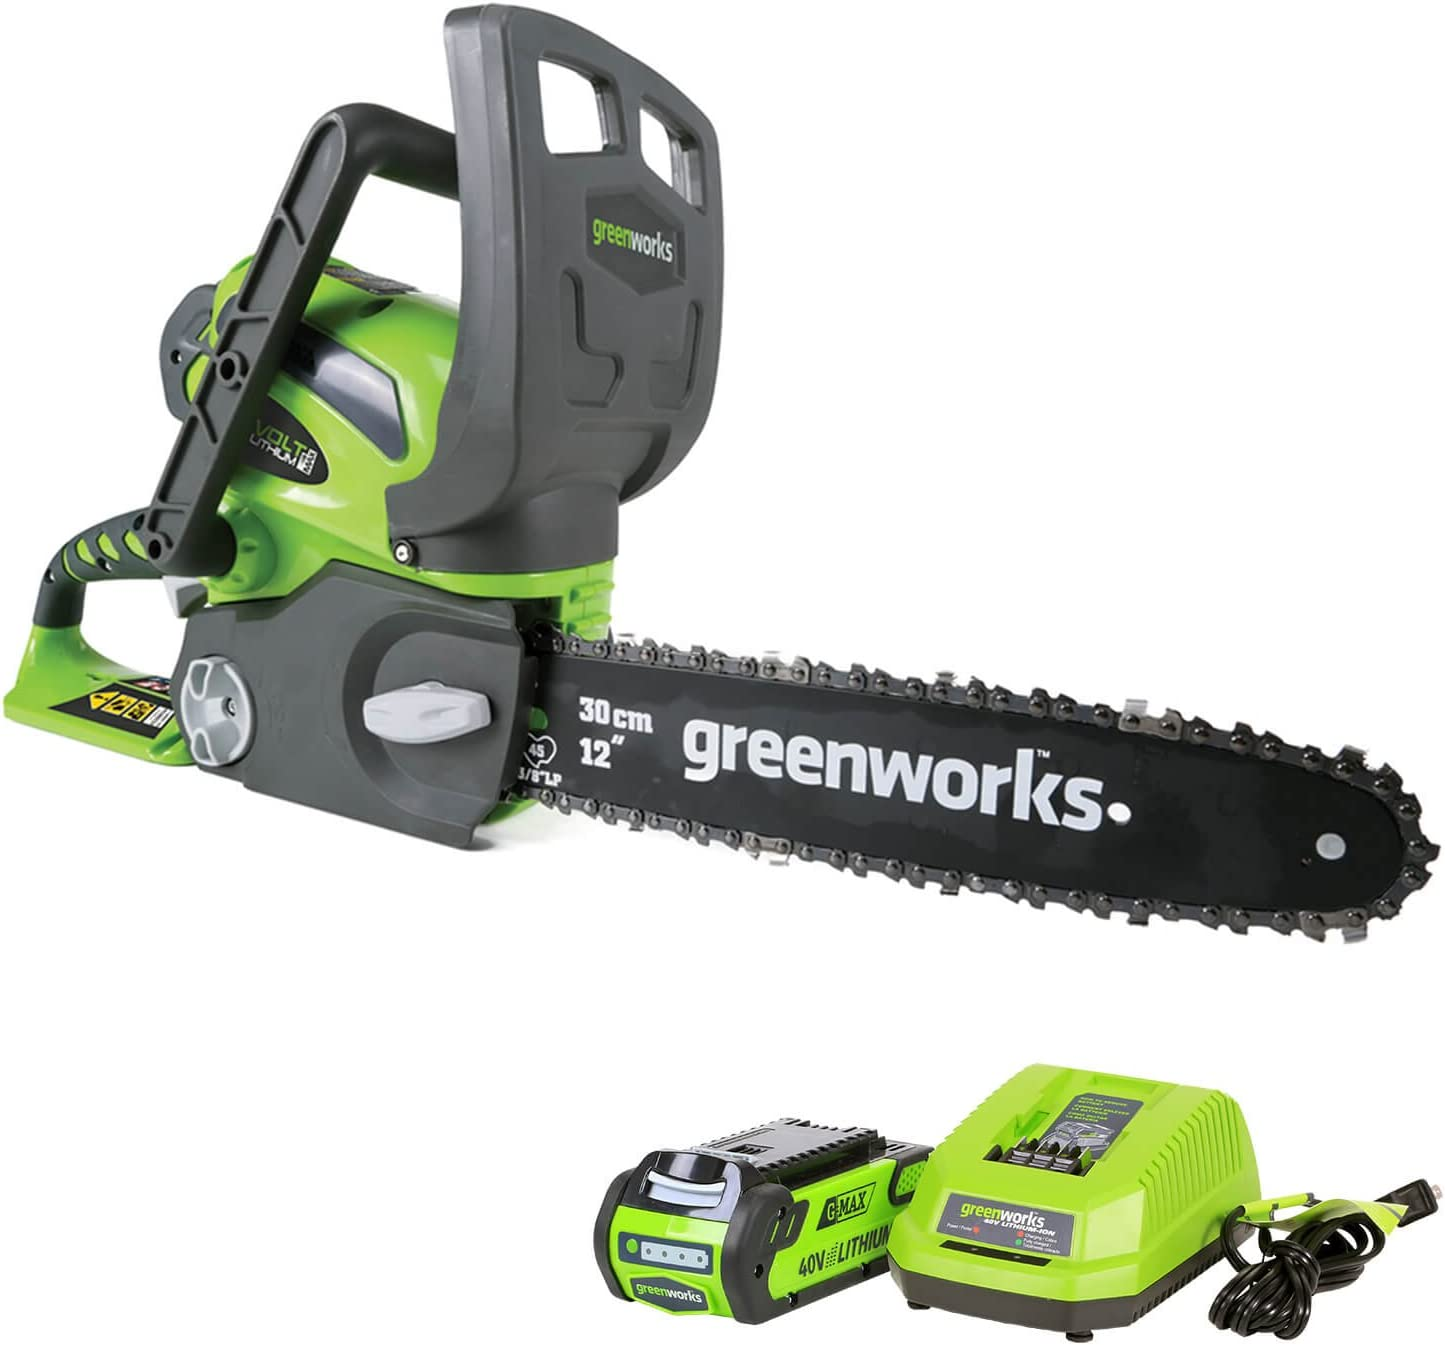 Best Cordless Chainsaw in 2021: Reviews & Buying Guide 4